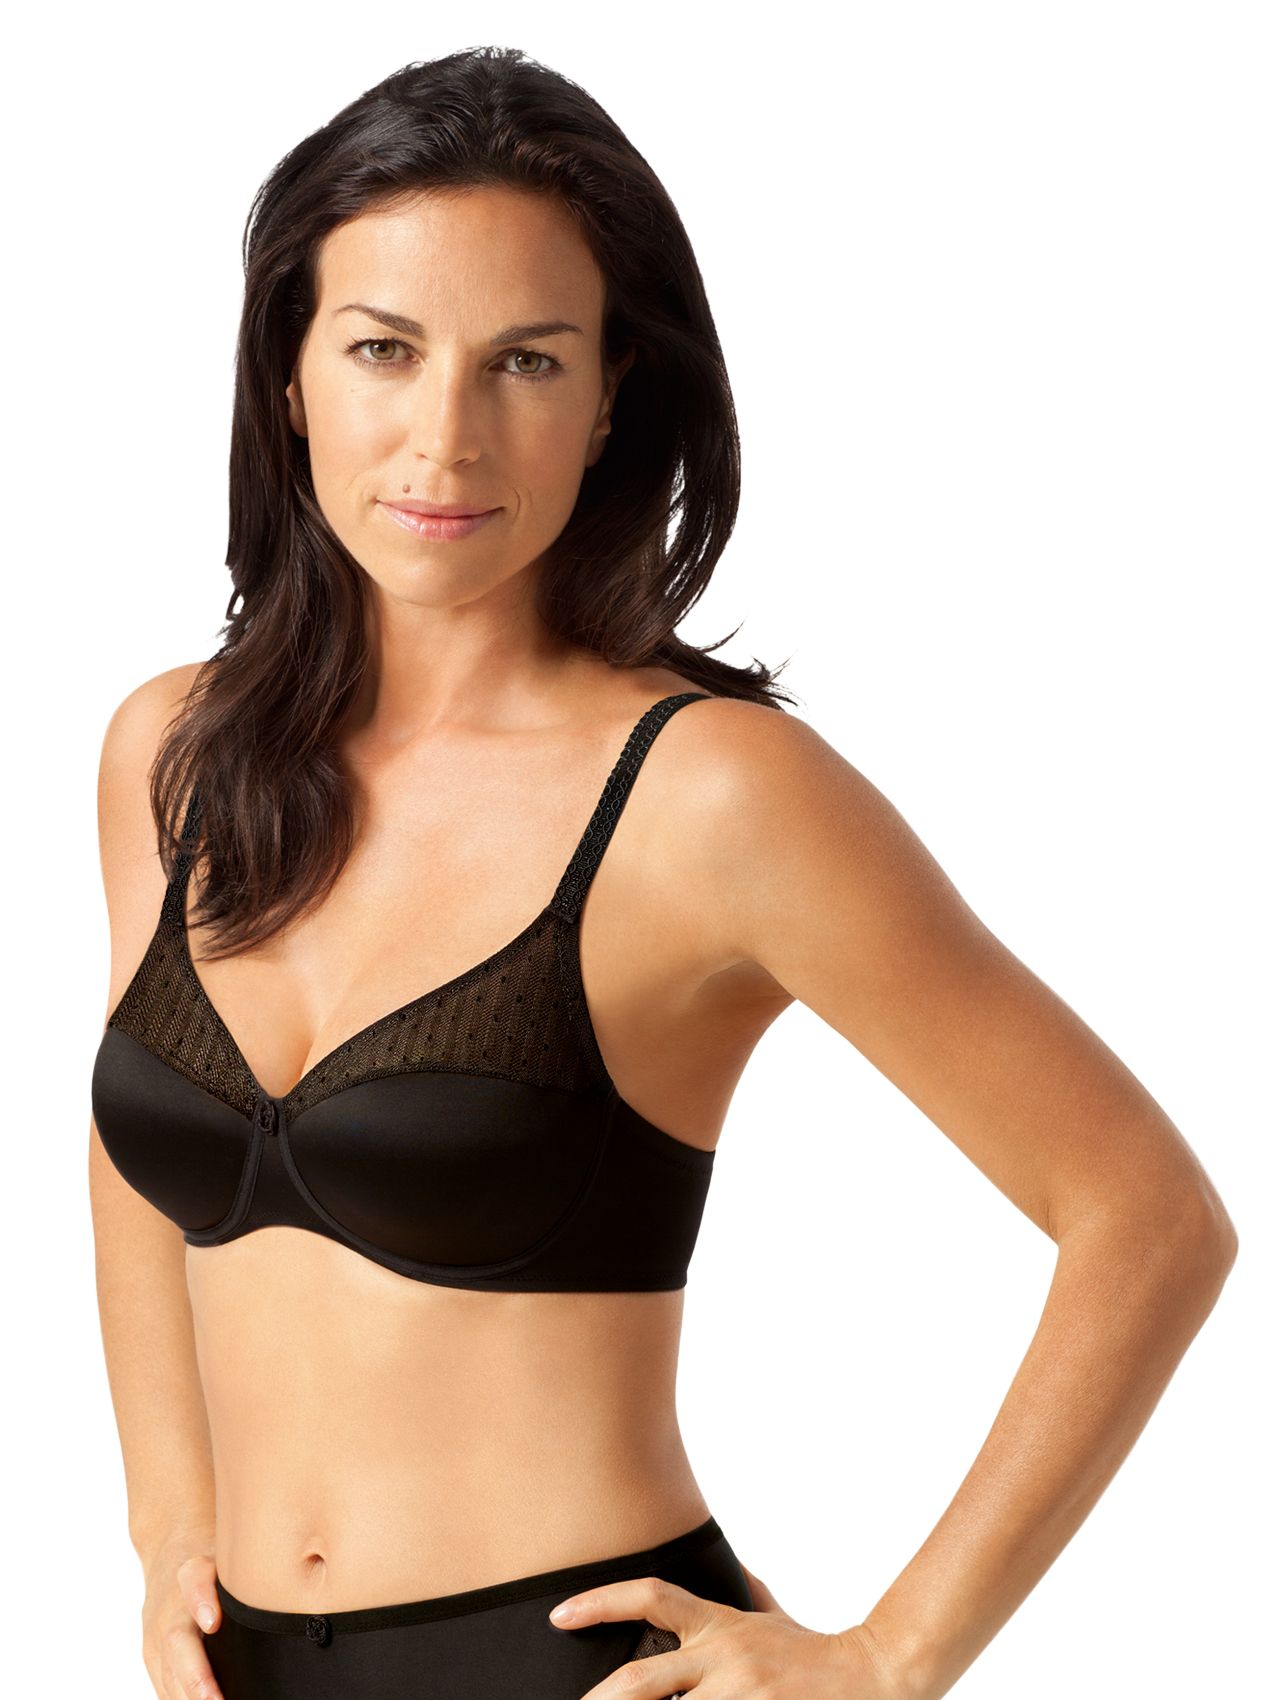 Playtex Tonique Contour Bra, Black